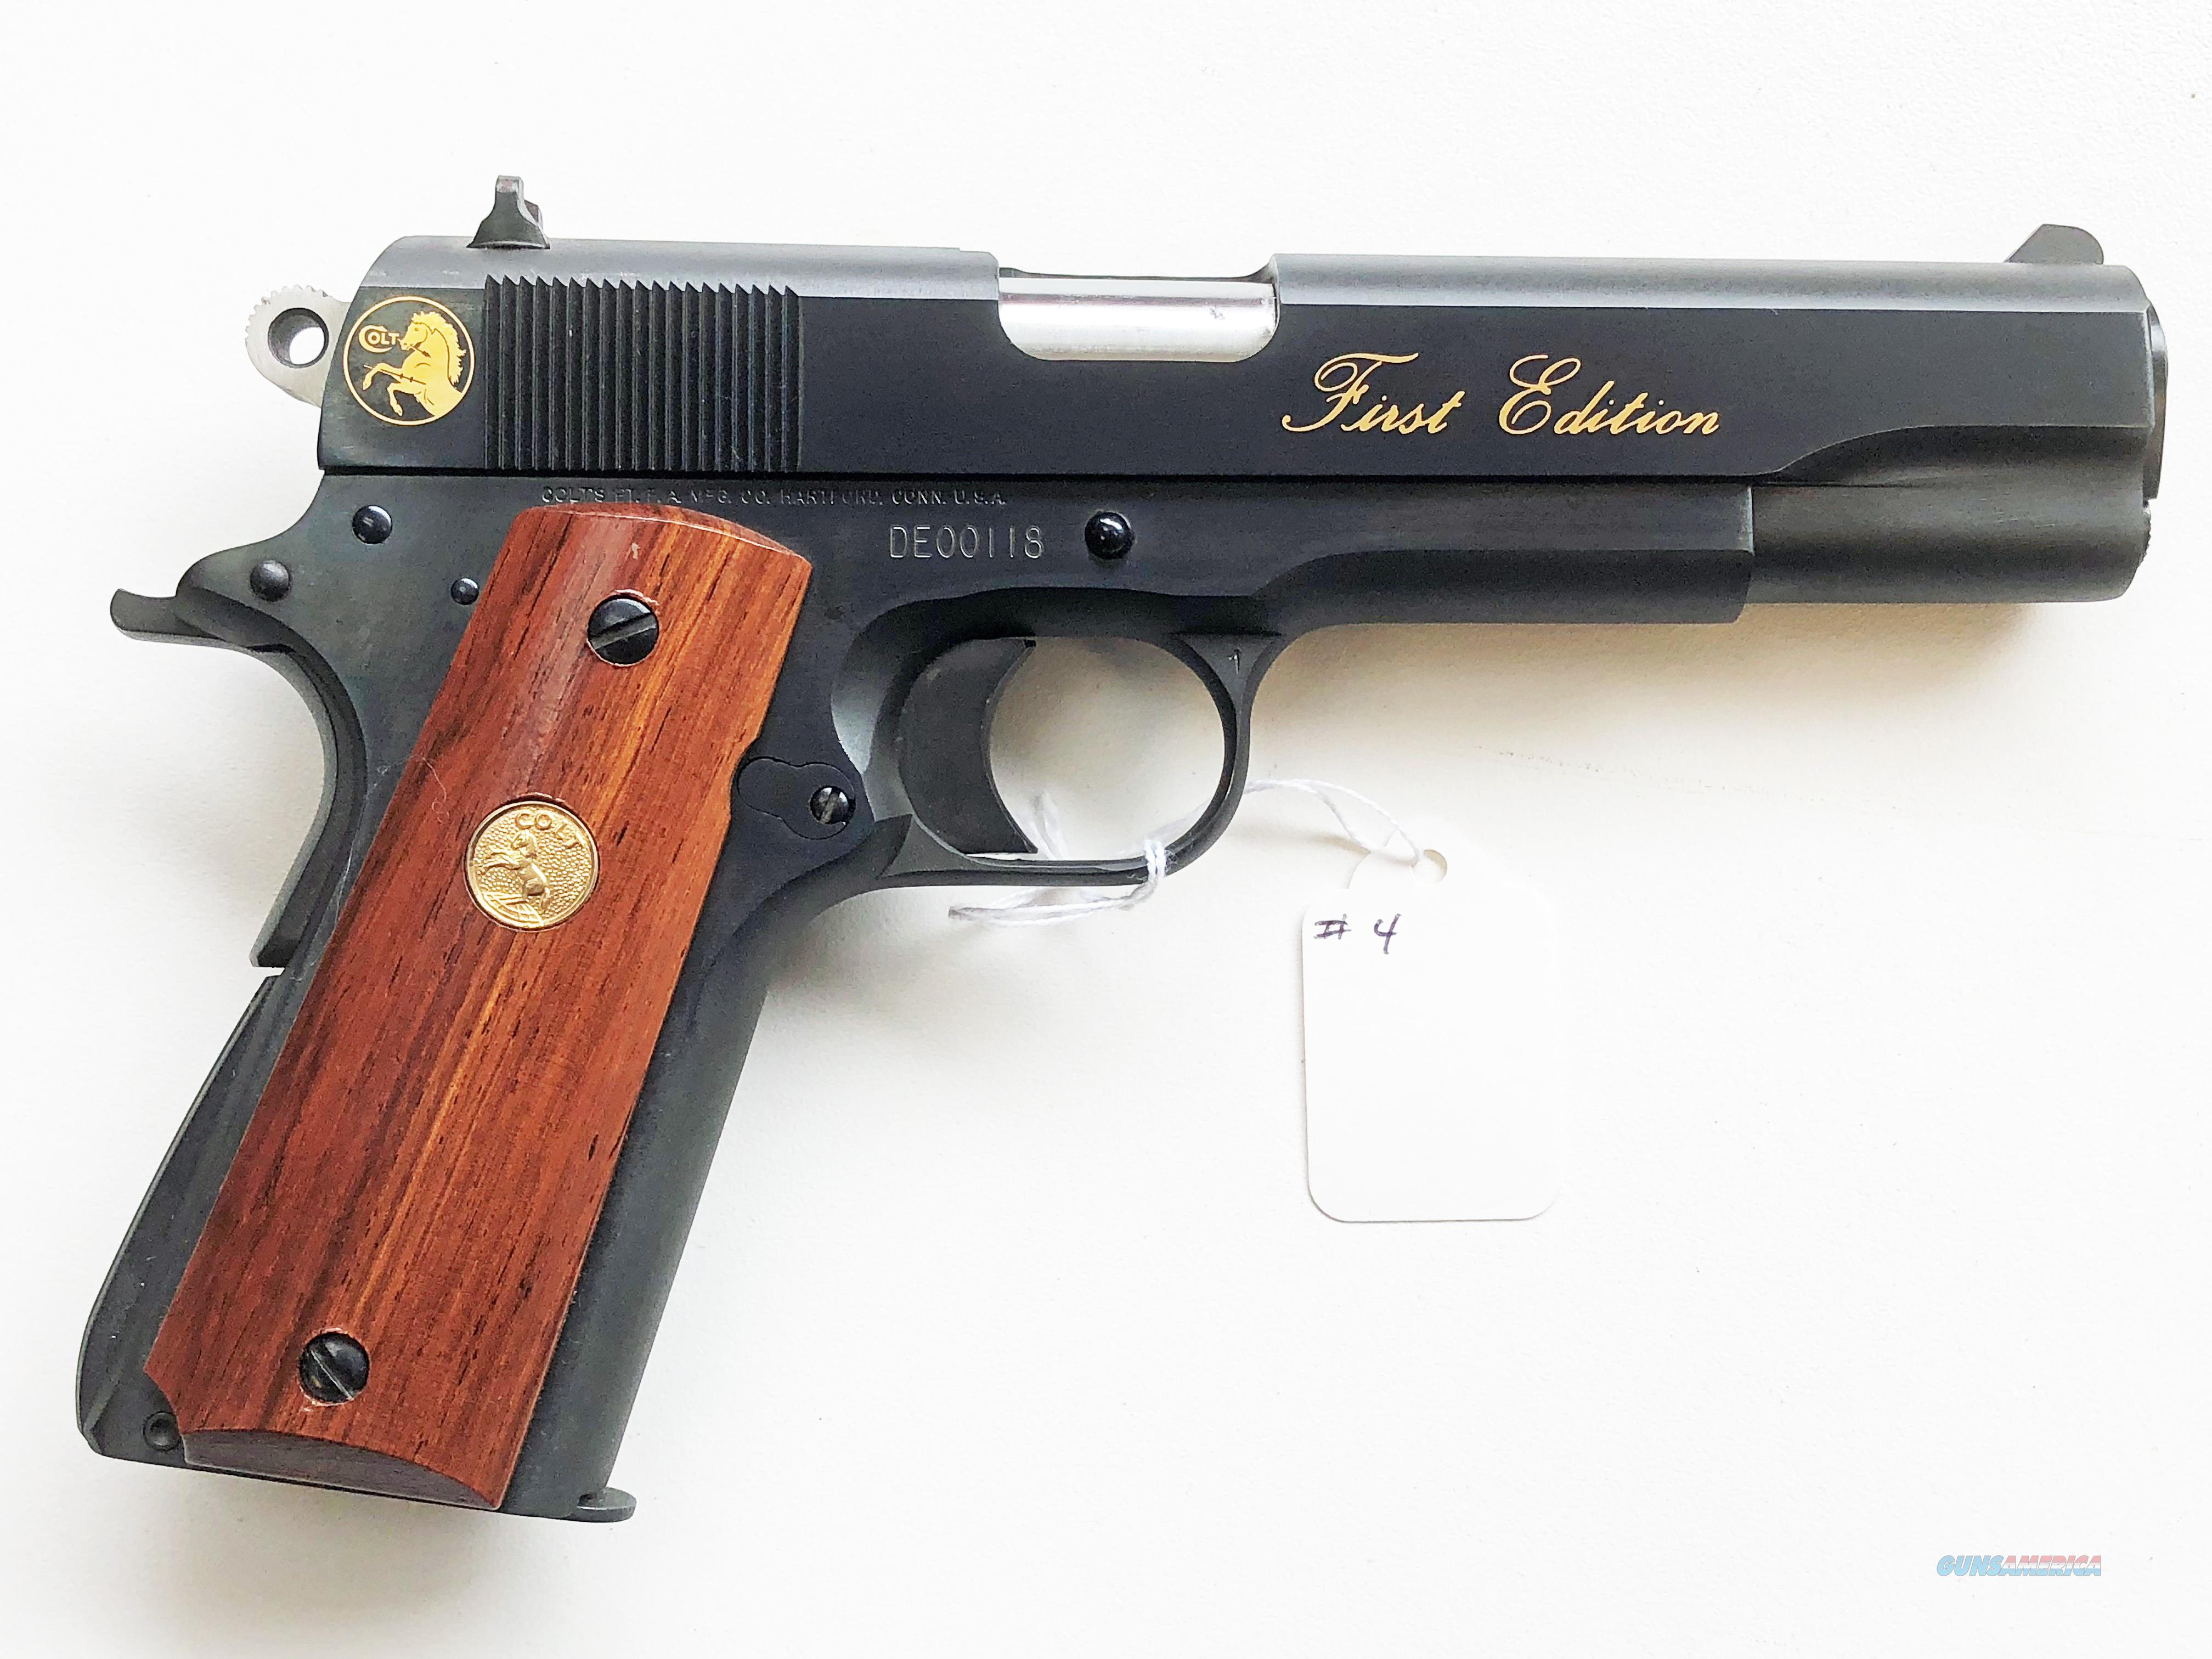 Colt Delta Elite For Sale On Gunsamerica Buy A Colt Delta E